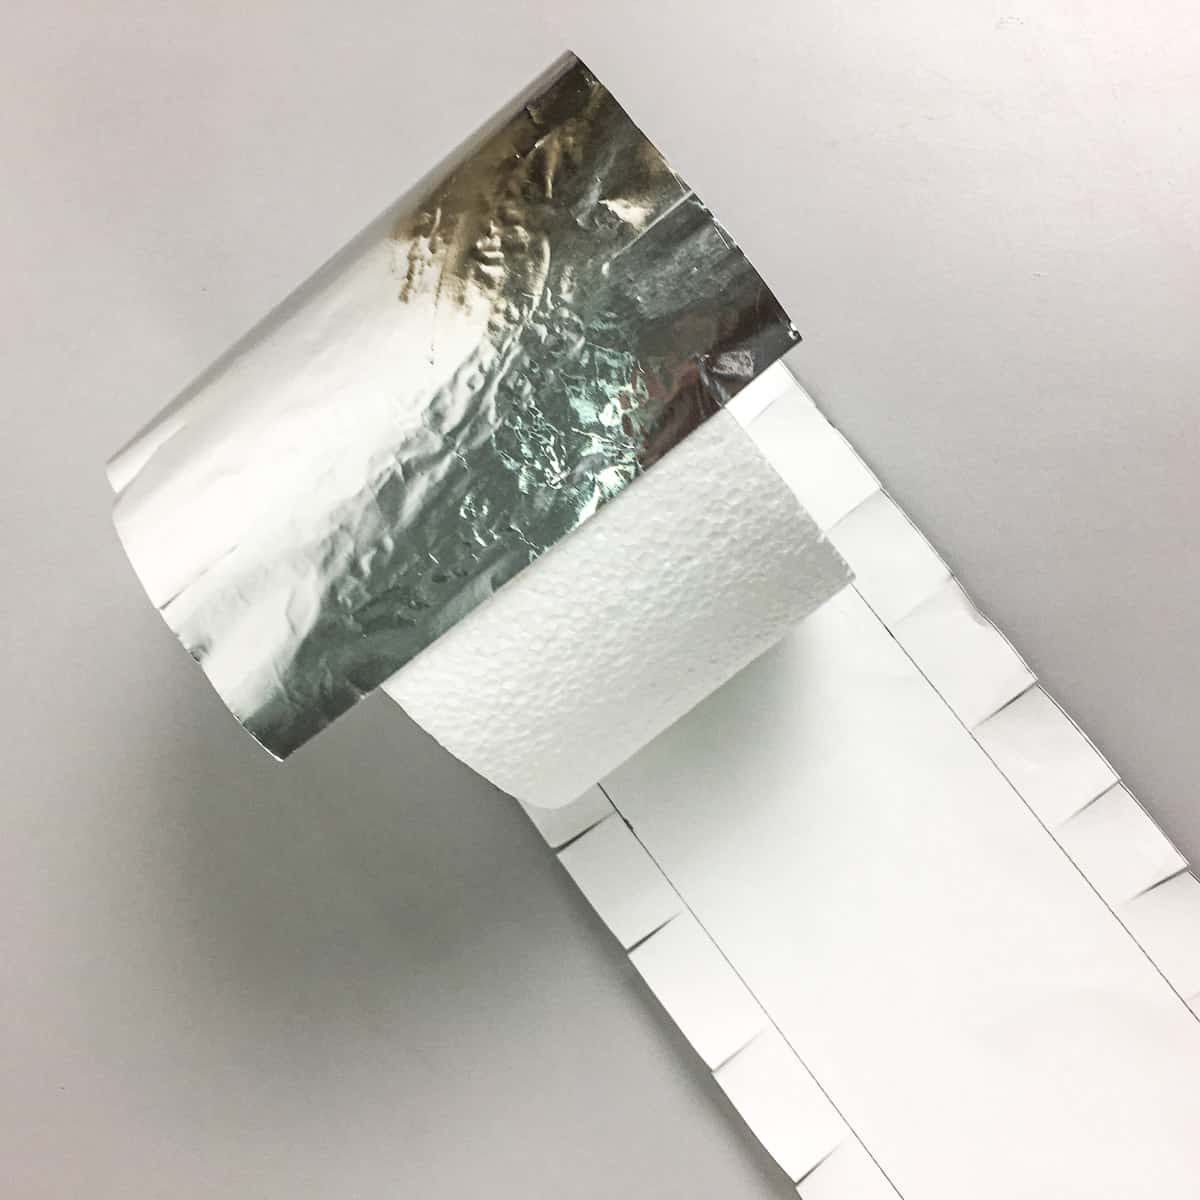 A round styrofoam block being wrapped in silver paper